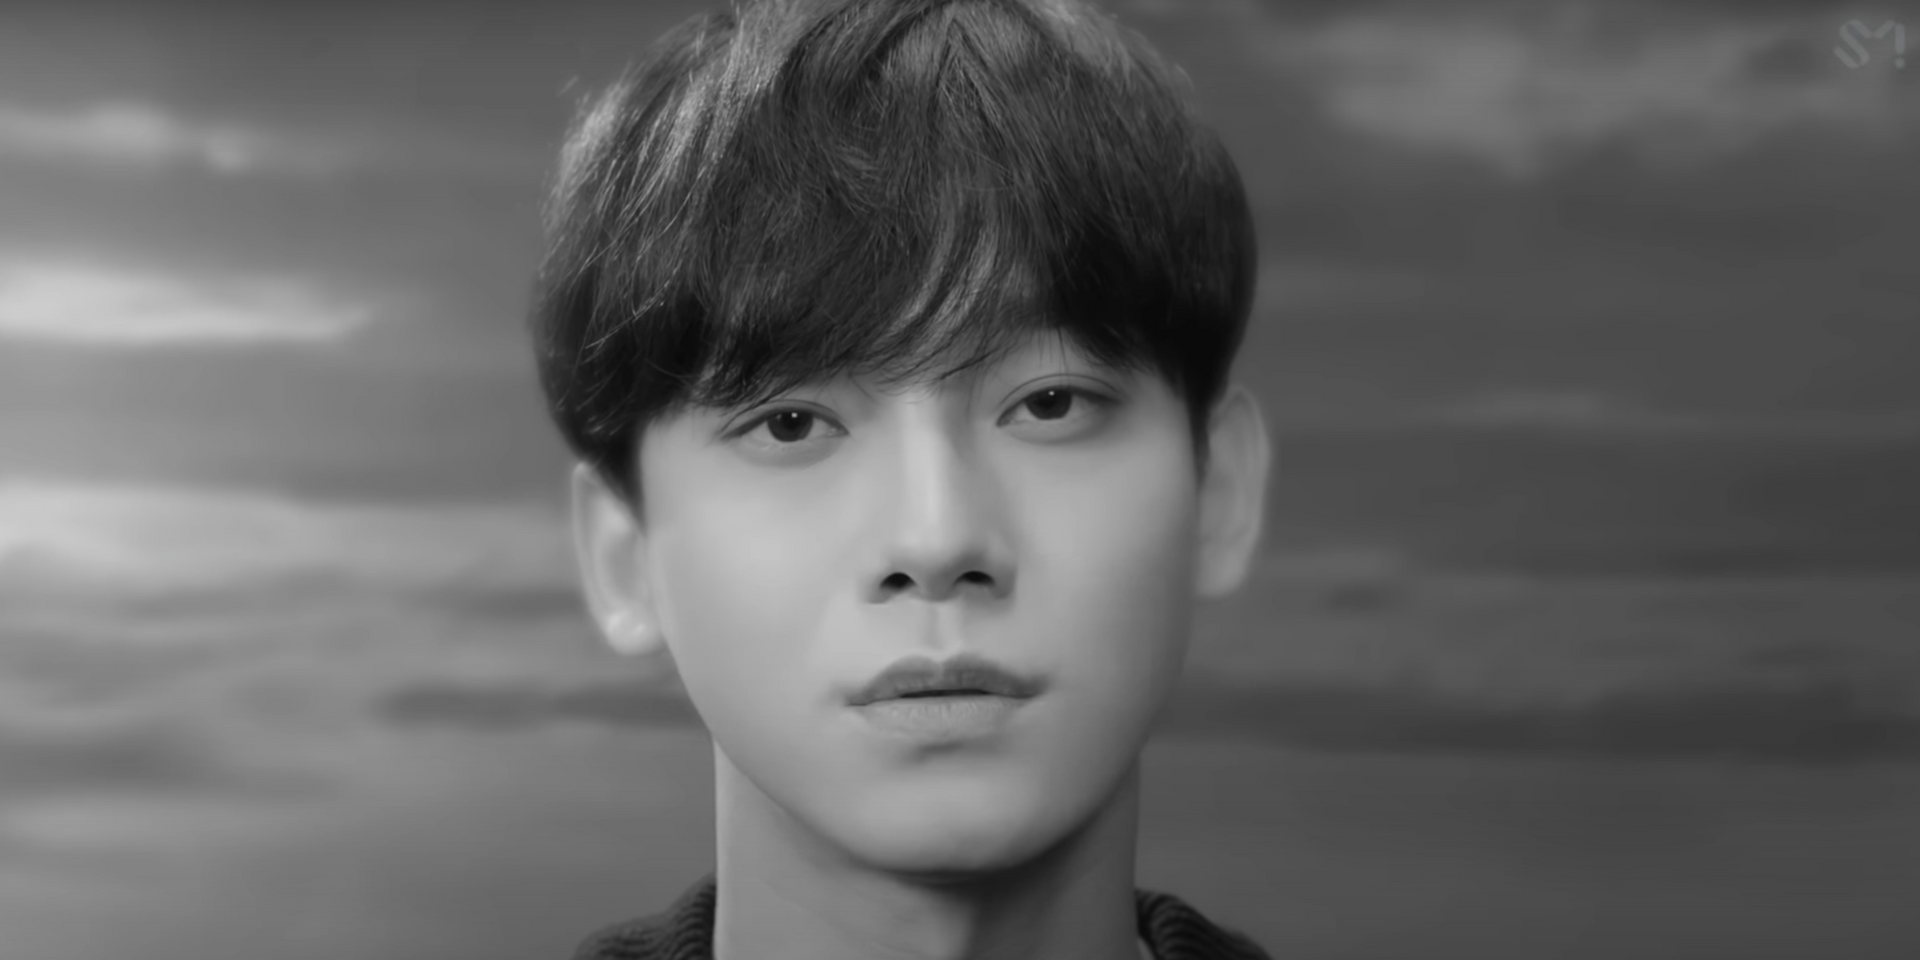 EXO's Chen drops soulful solo single and music video, 'Hello' – watch